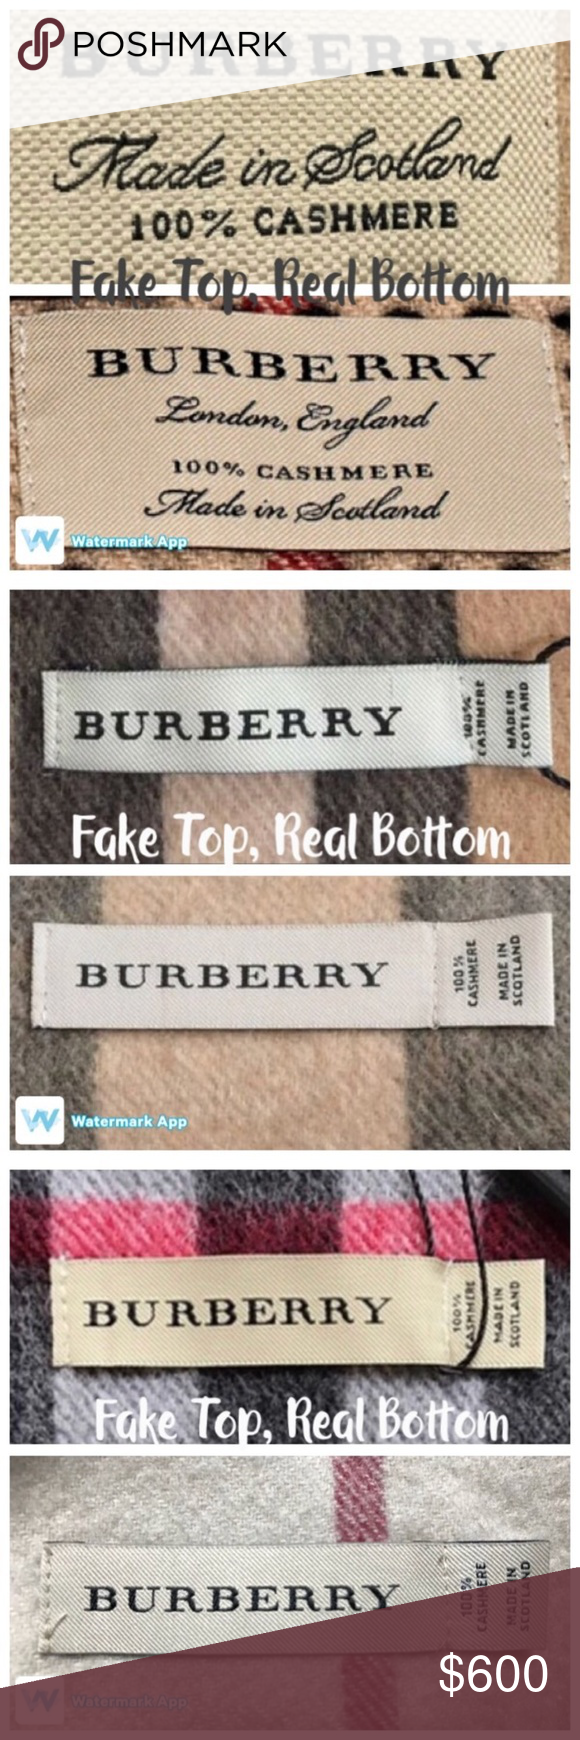 Burberry Scarf Tag : burberry, scarf, AUTHENTIC, Scarves:, Read/Share!, Burberry, Scarf,, Burberry,, Things